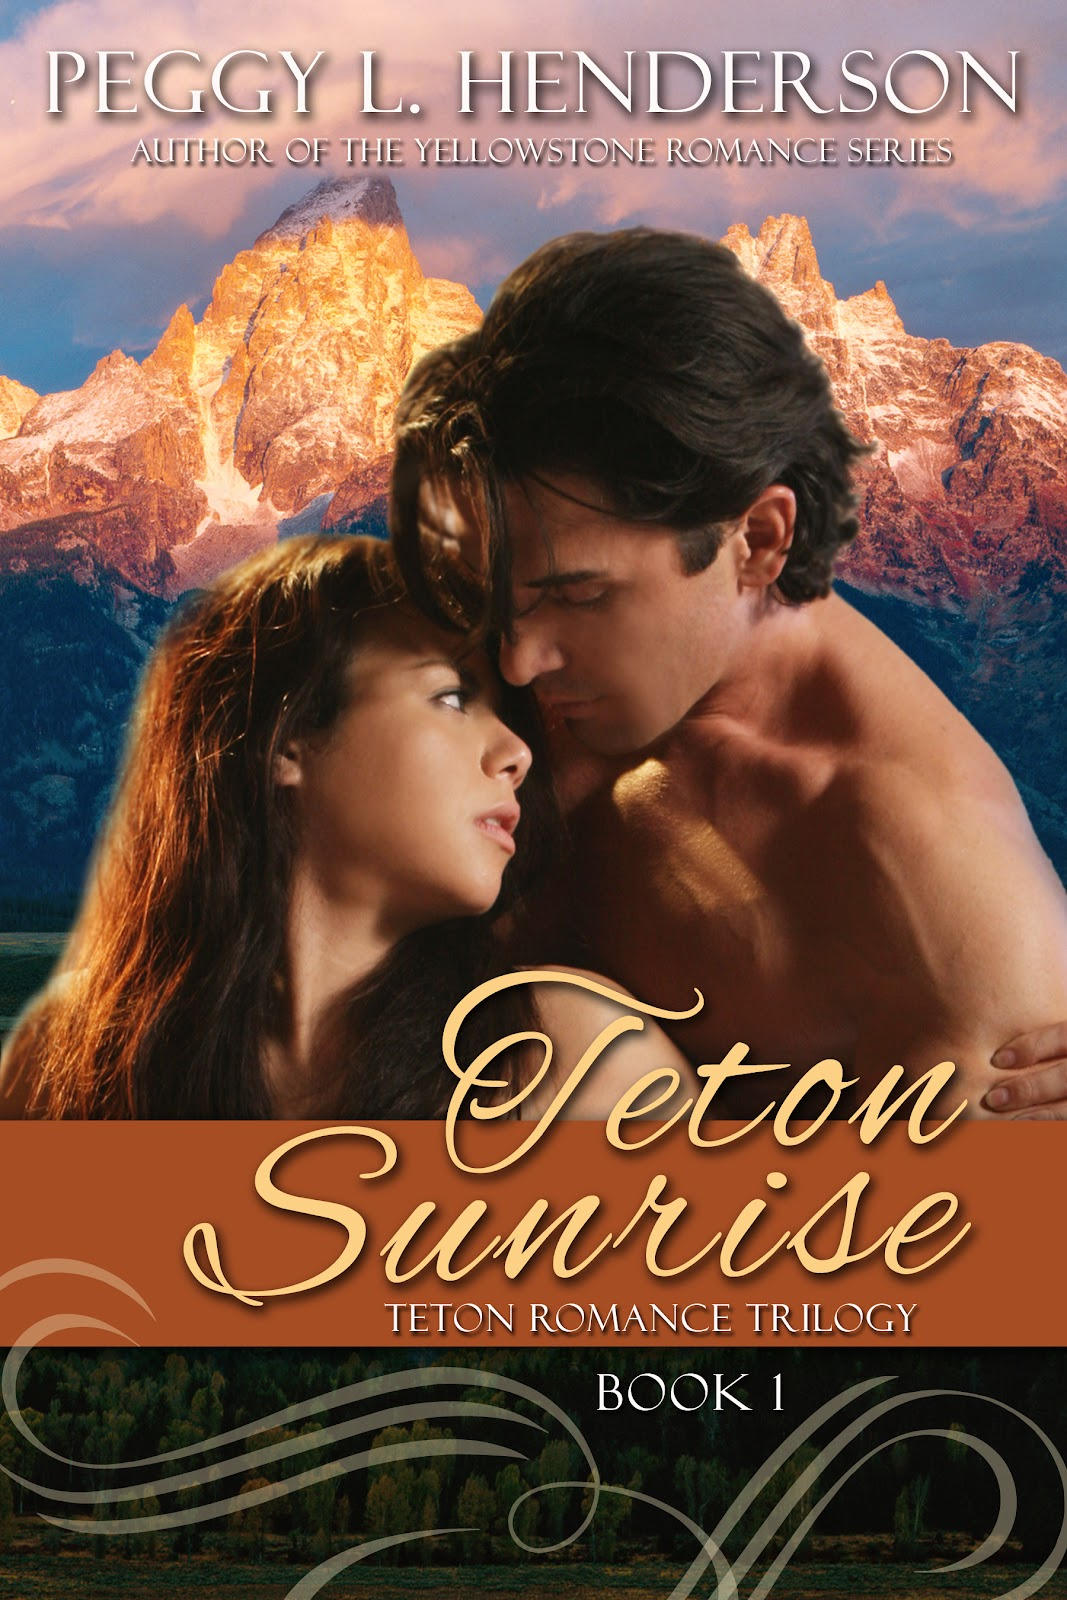 Romance Book Cover S ~ Romance book covers cover reveal for teton sunrise by